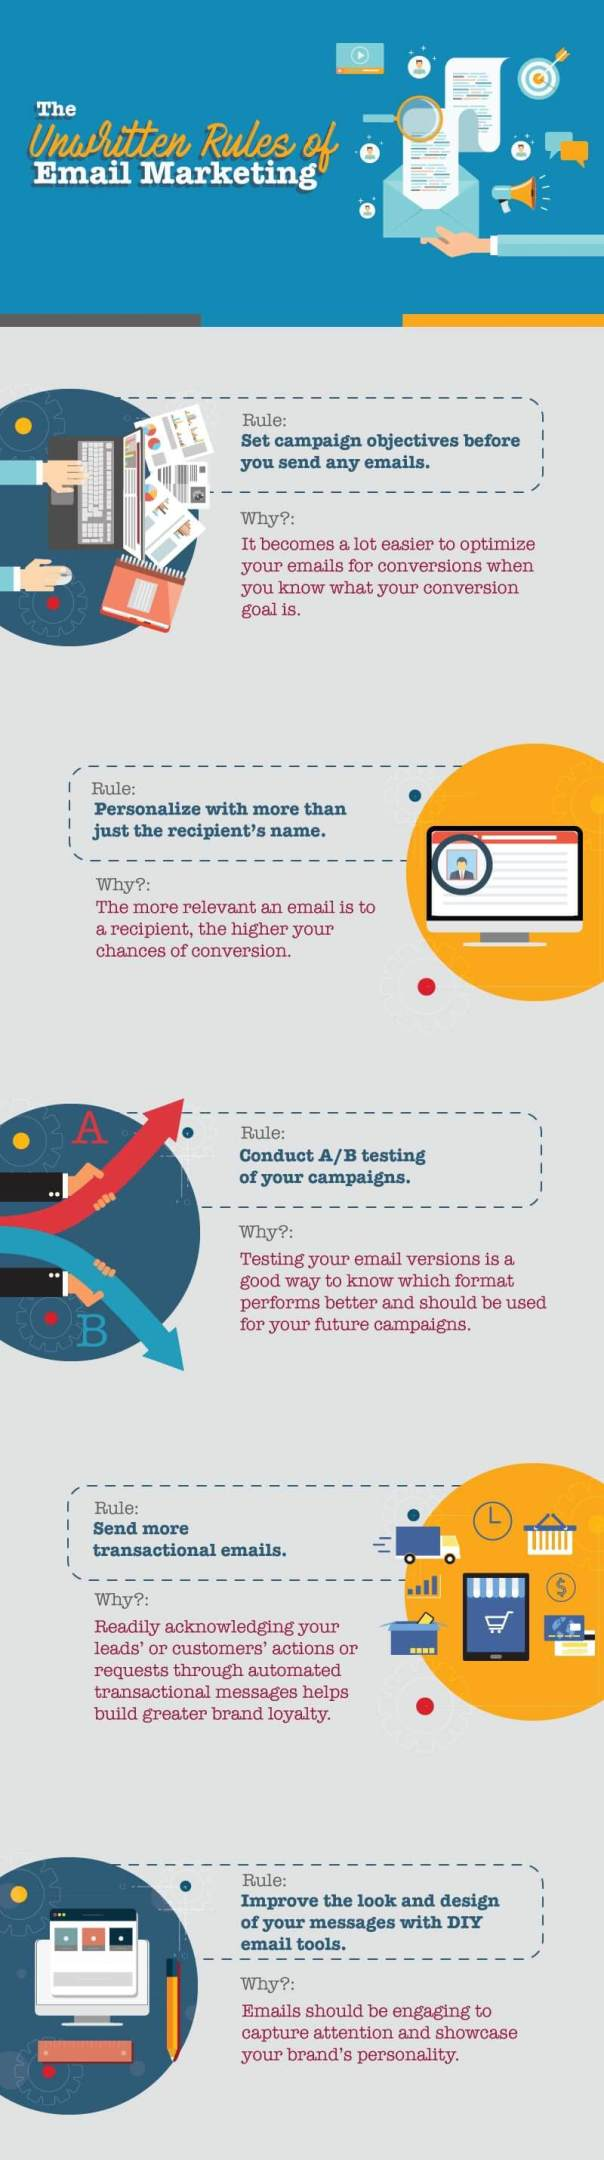 The-Unwritten-Rules-of-Email-Marketing-infographic_LIjpg_01